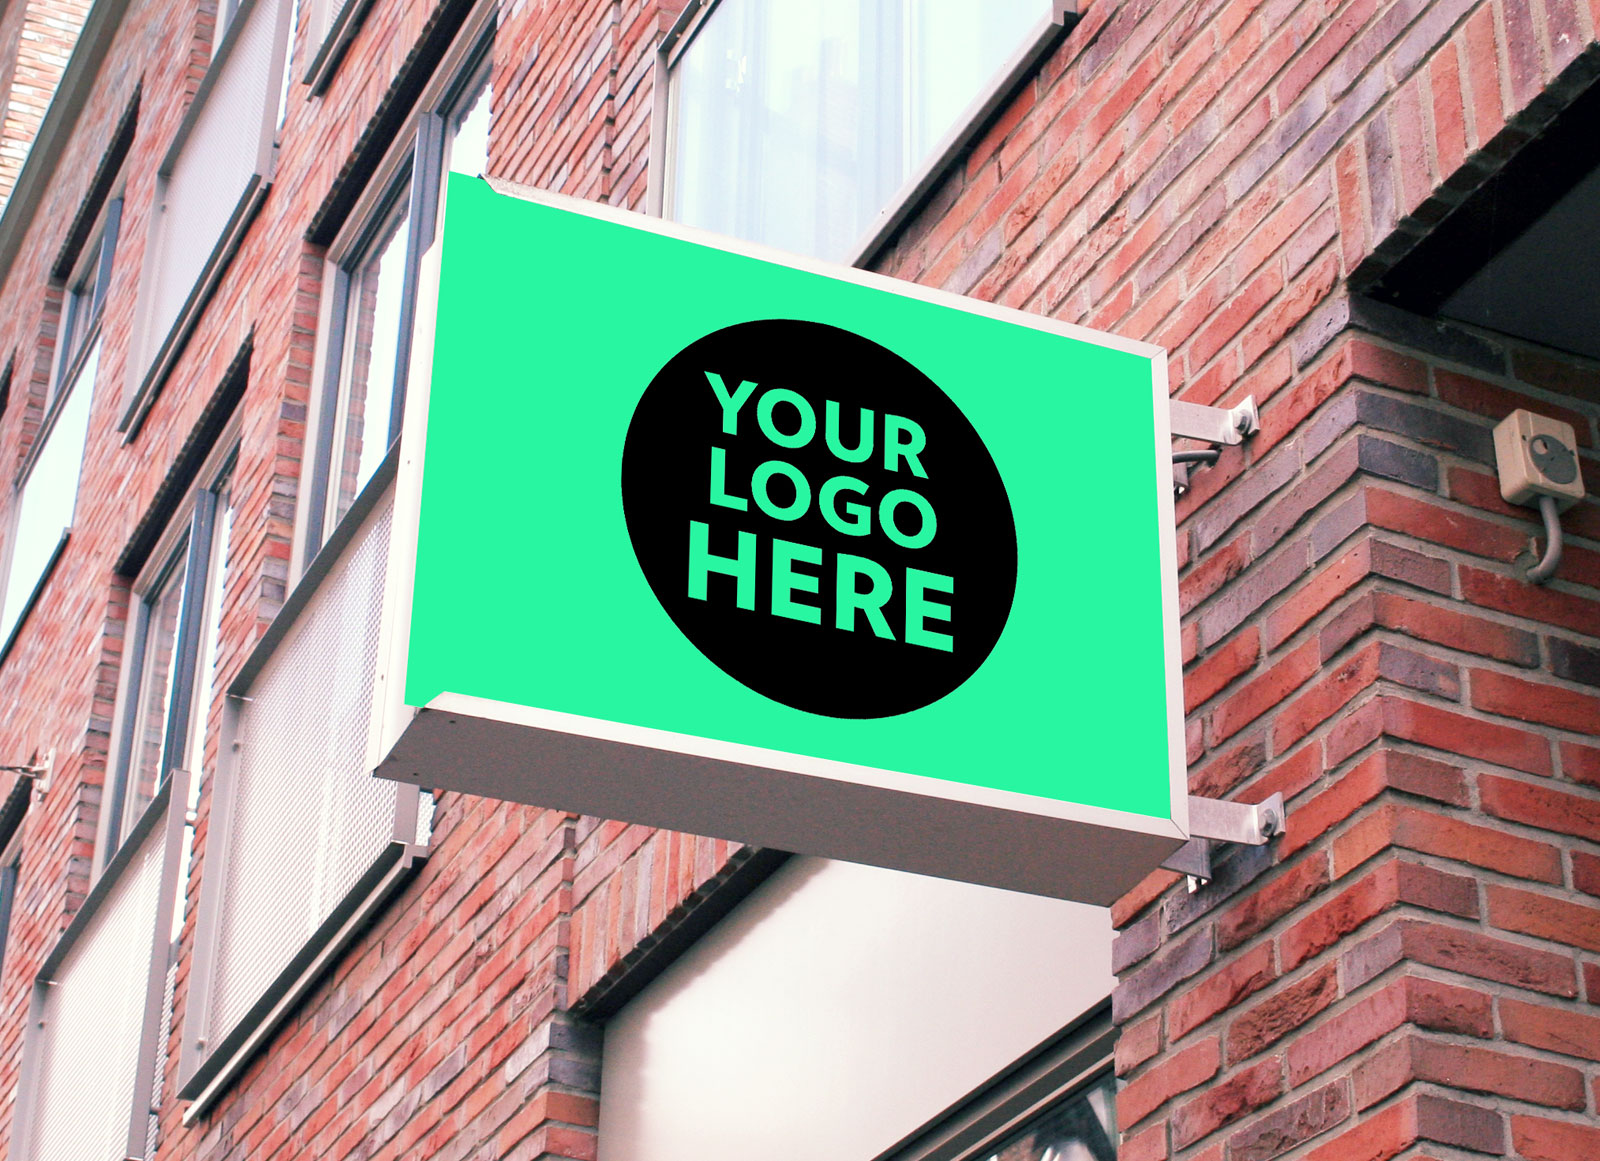 Free-Square-Wall-Mounted-Shop-Sign-Mockup-PSD-2